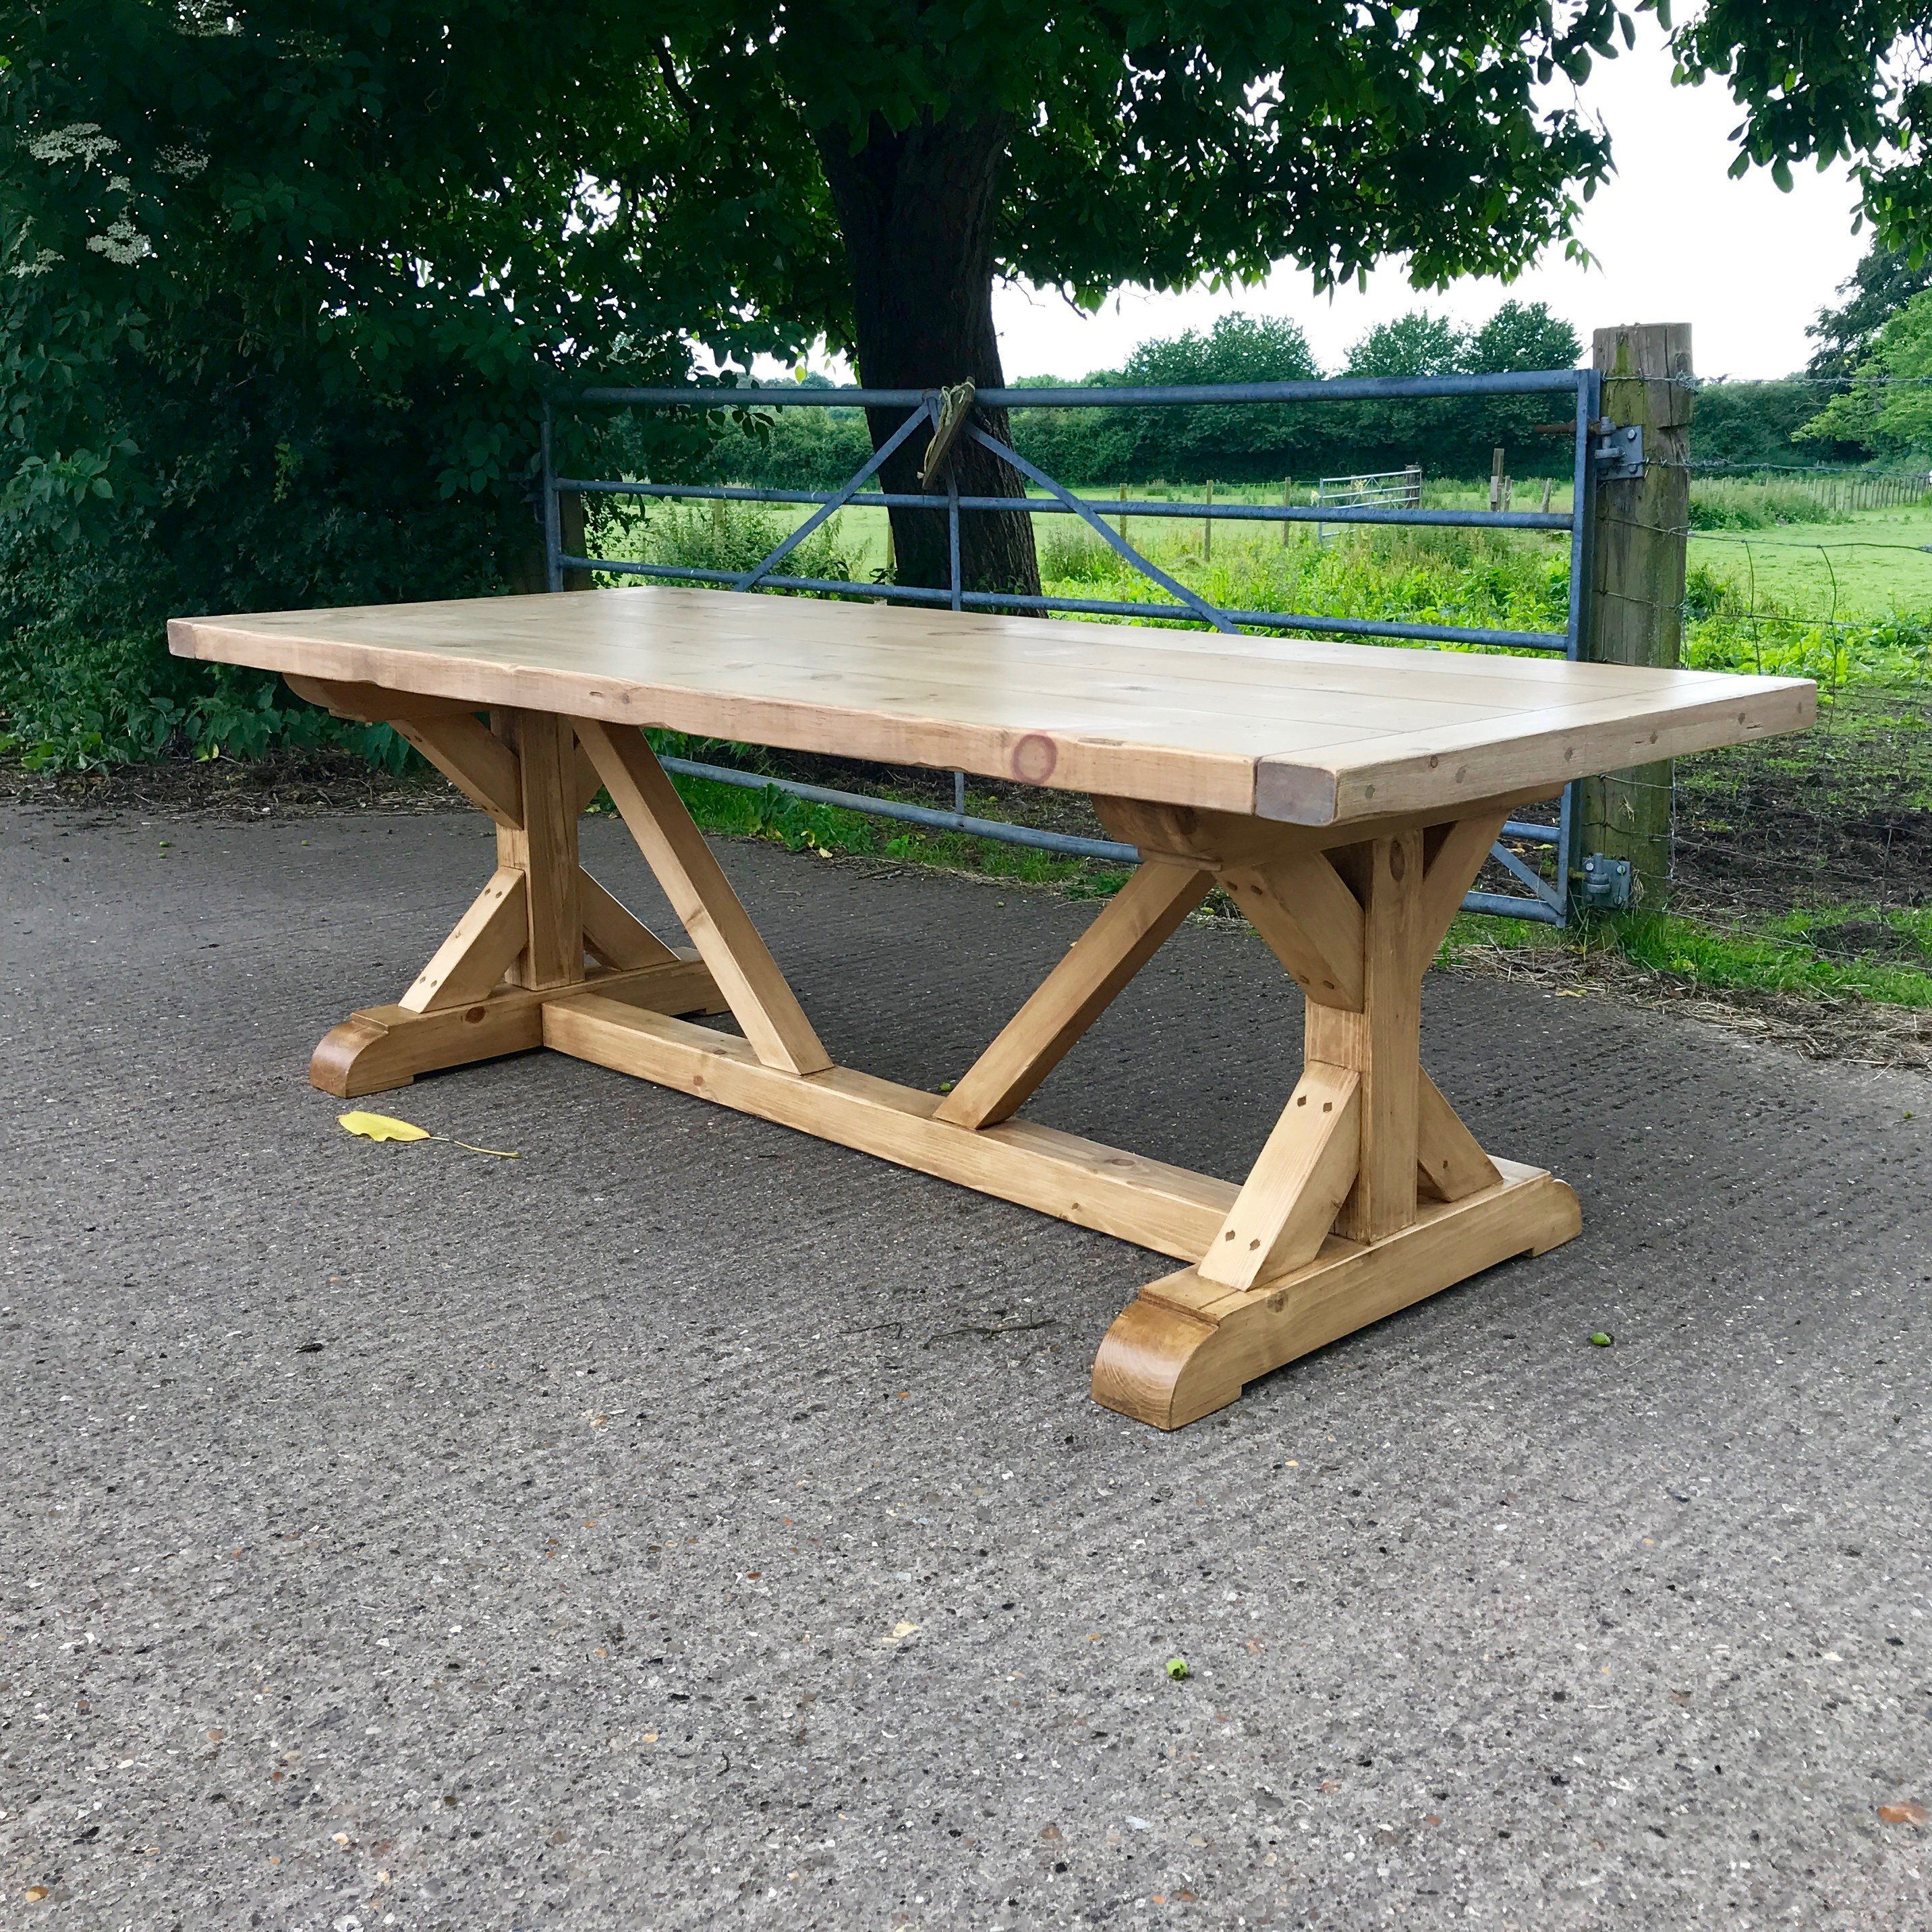 The Monastery X Table - 7'(2.1m) x 31.5(0.8m) / Downpipe